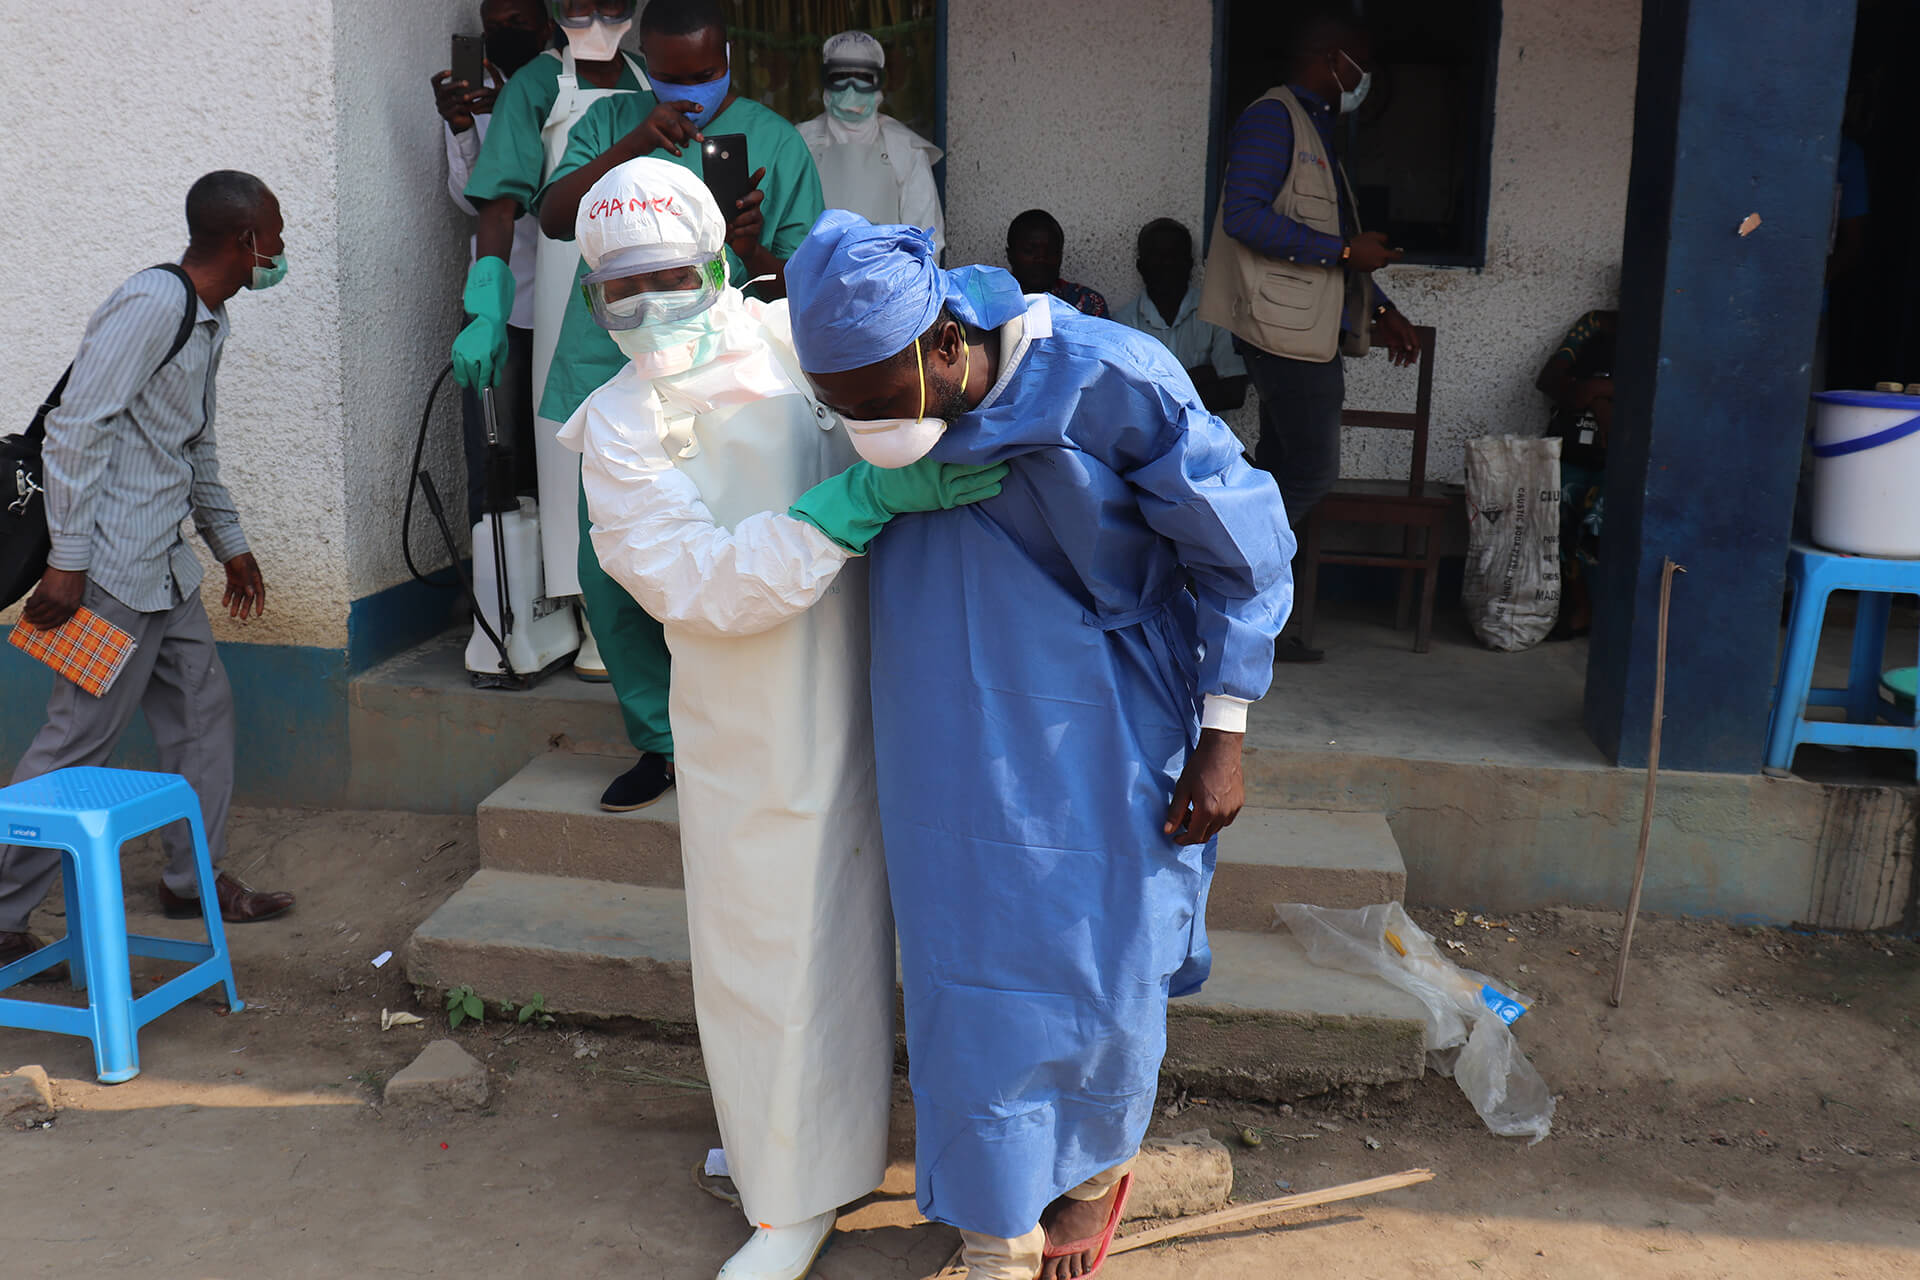 Health workers conduct simulation exercises where they interact with a patient with a suspected case of Ebola.